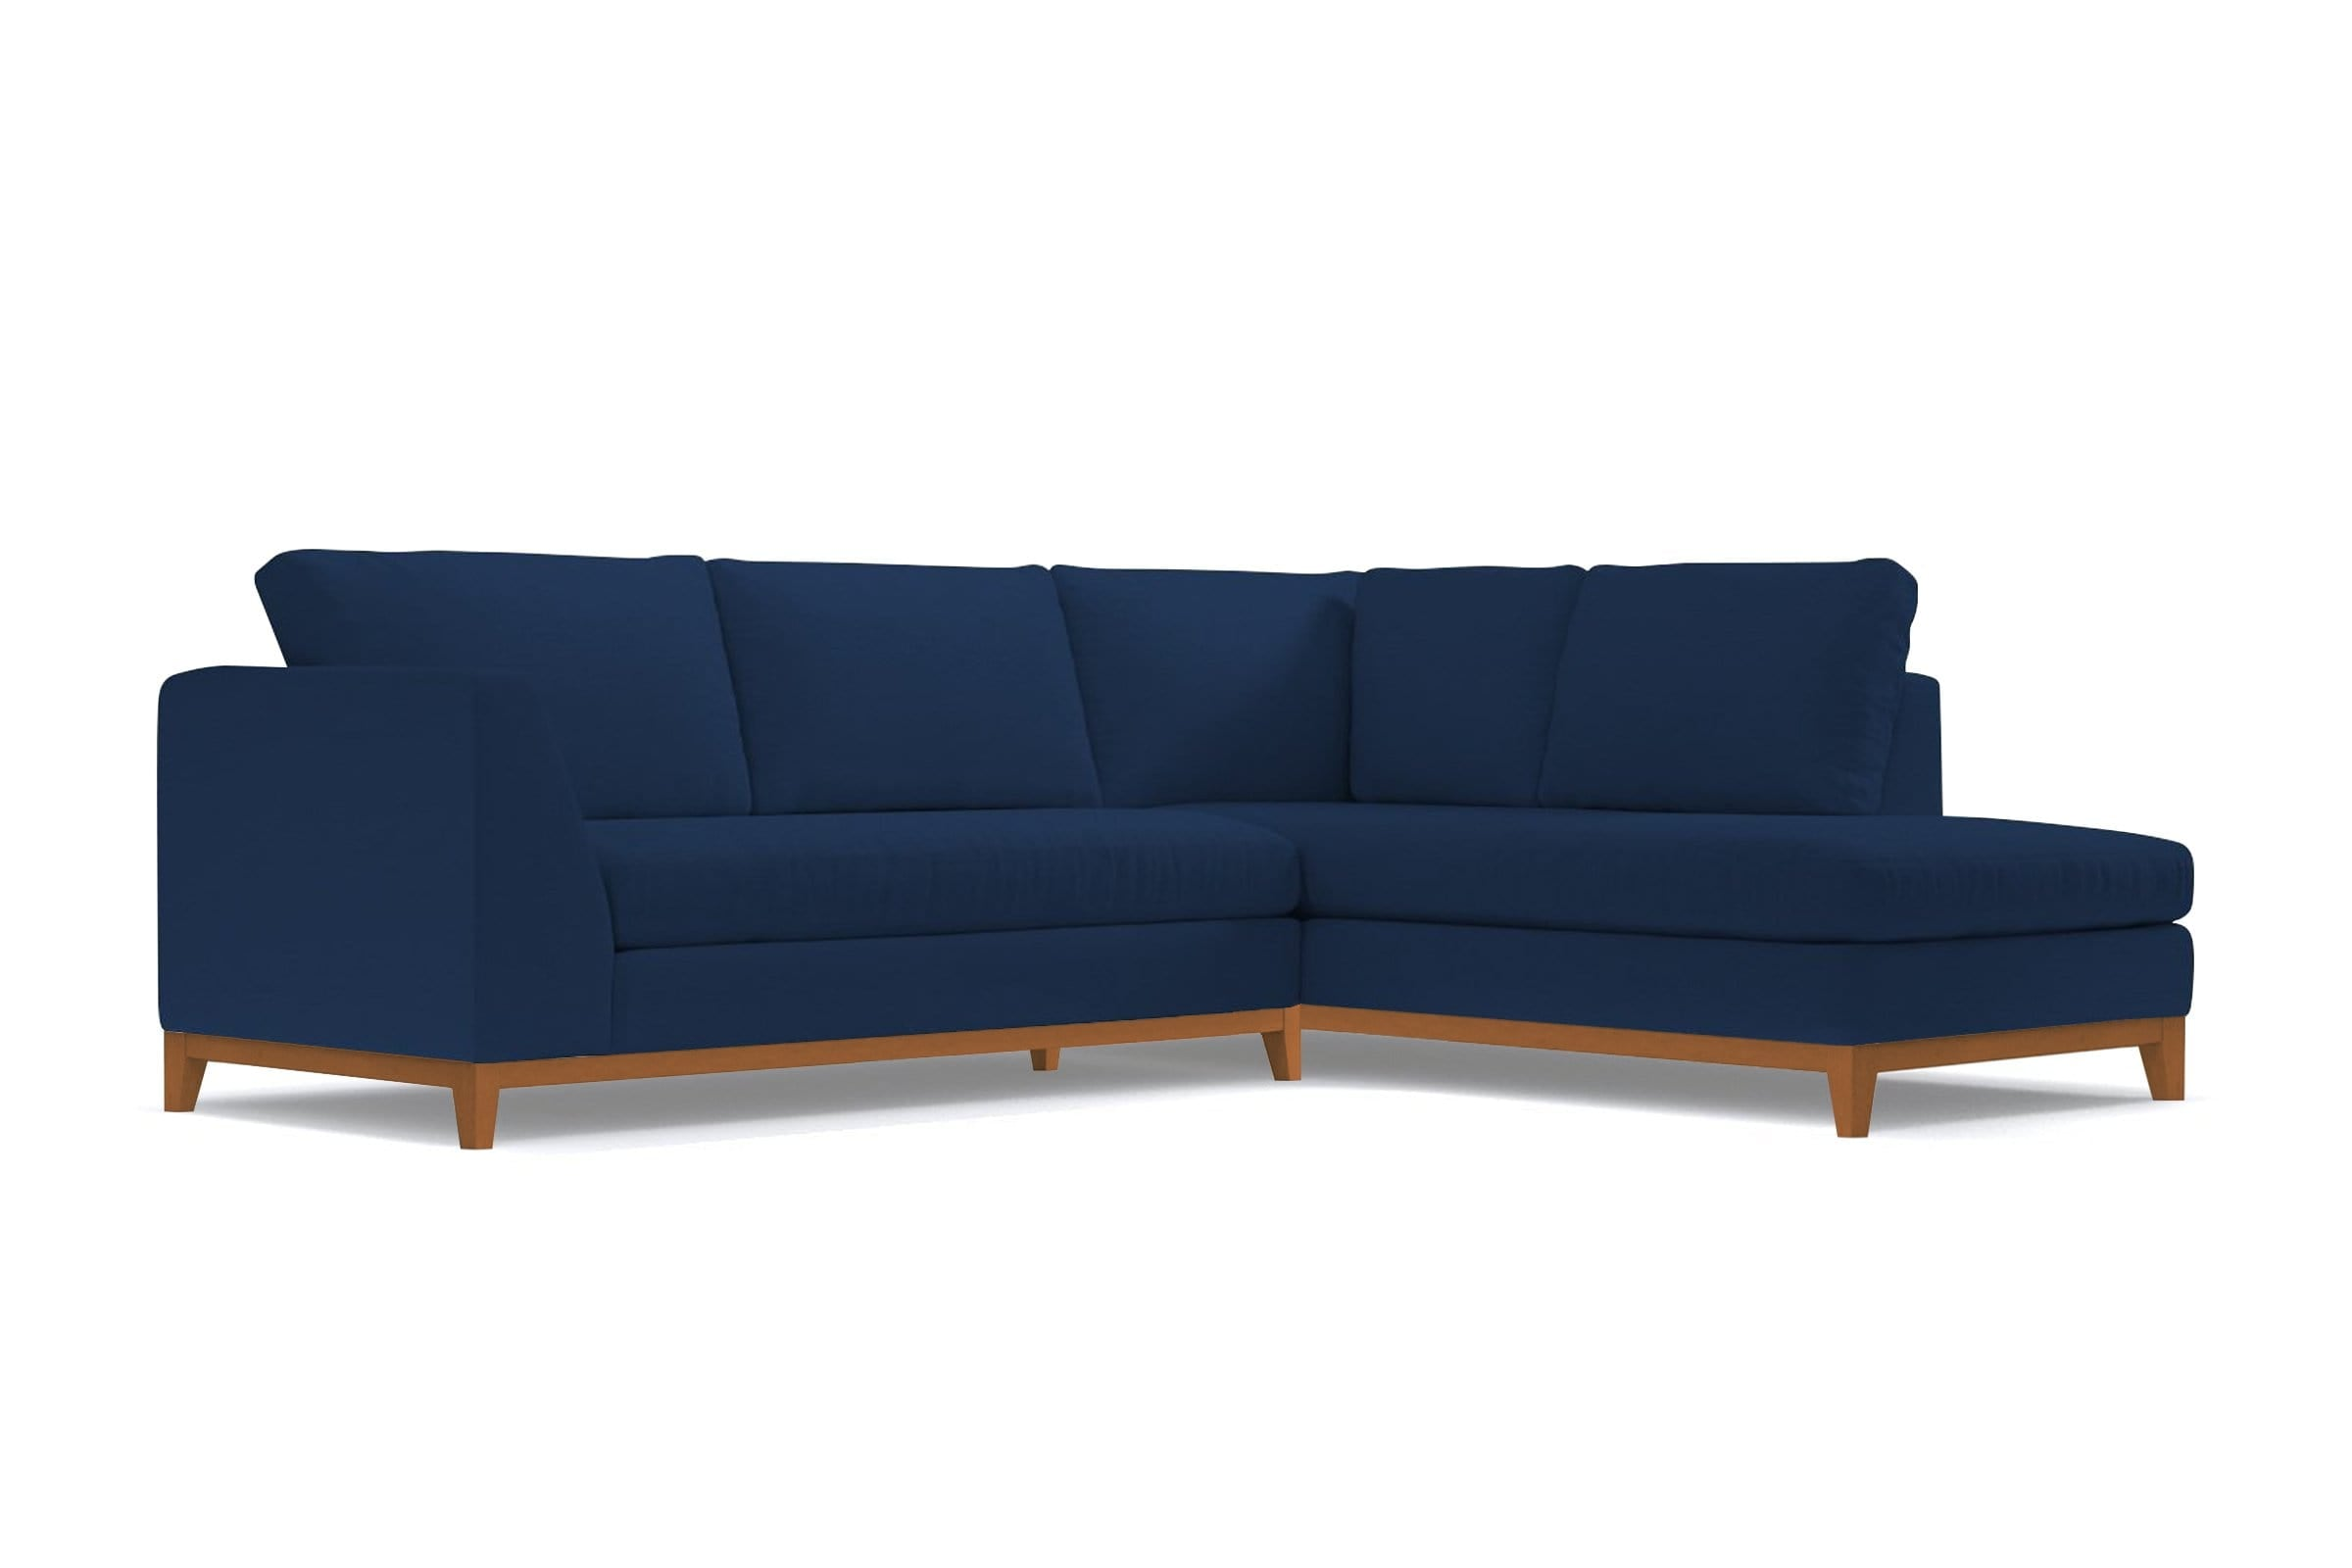 Mulholland Drive 2pc Sleeper Sectional